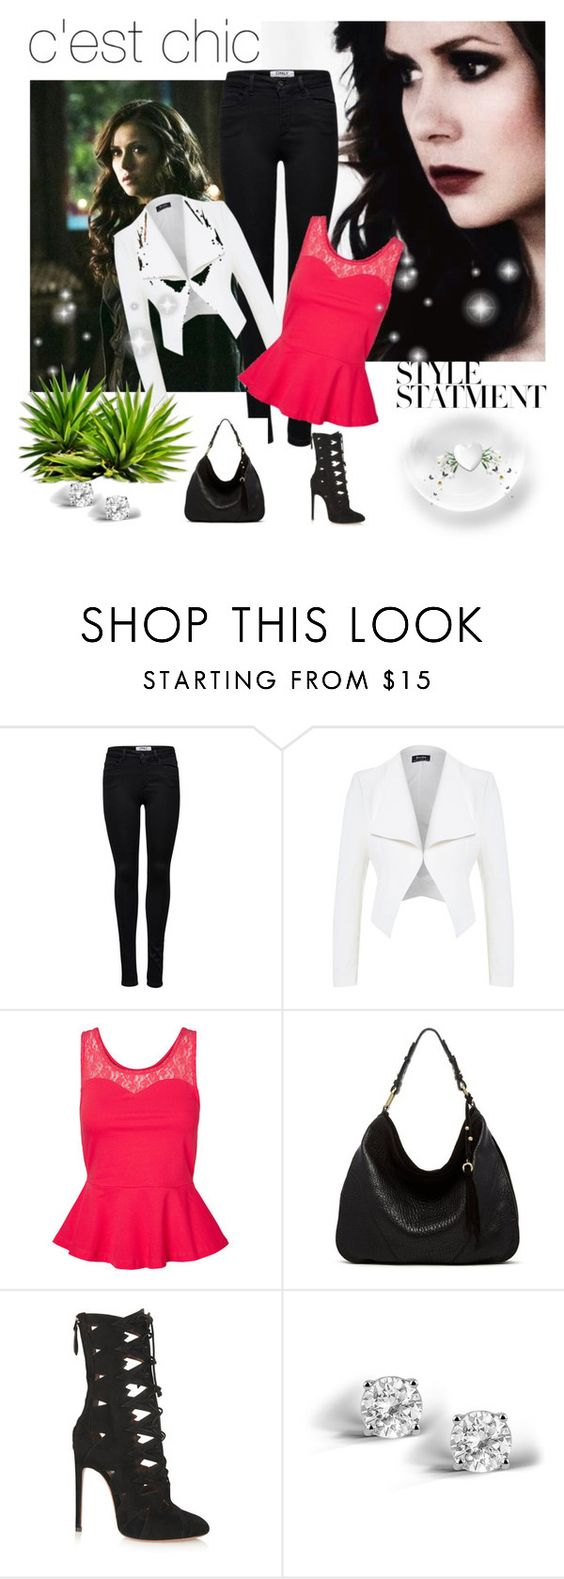 """Rosalie Gilbert"" by chantebreytenbach ❤ liked on Polyvore featuring ONLY, Vero Moda, Ella Moss, Alaïa and Glitzy Rocks"